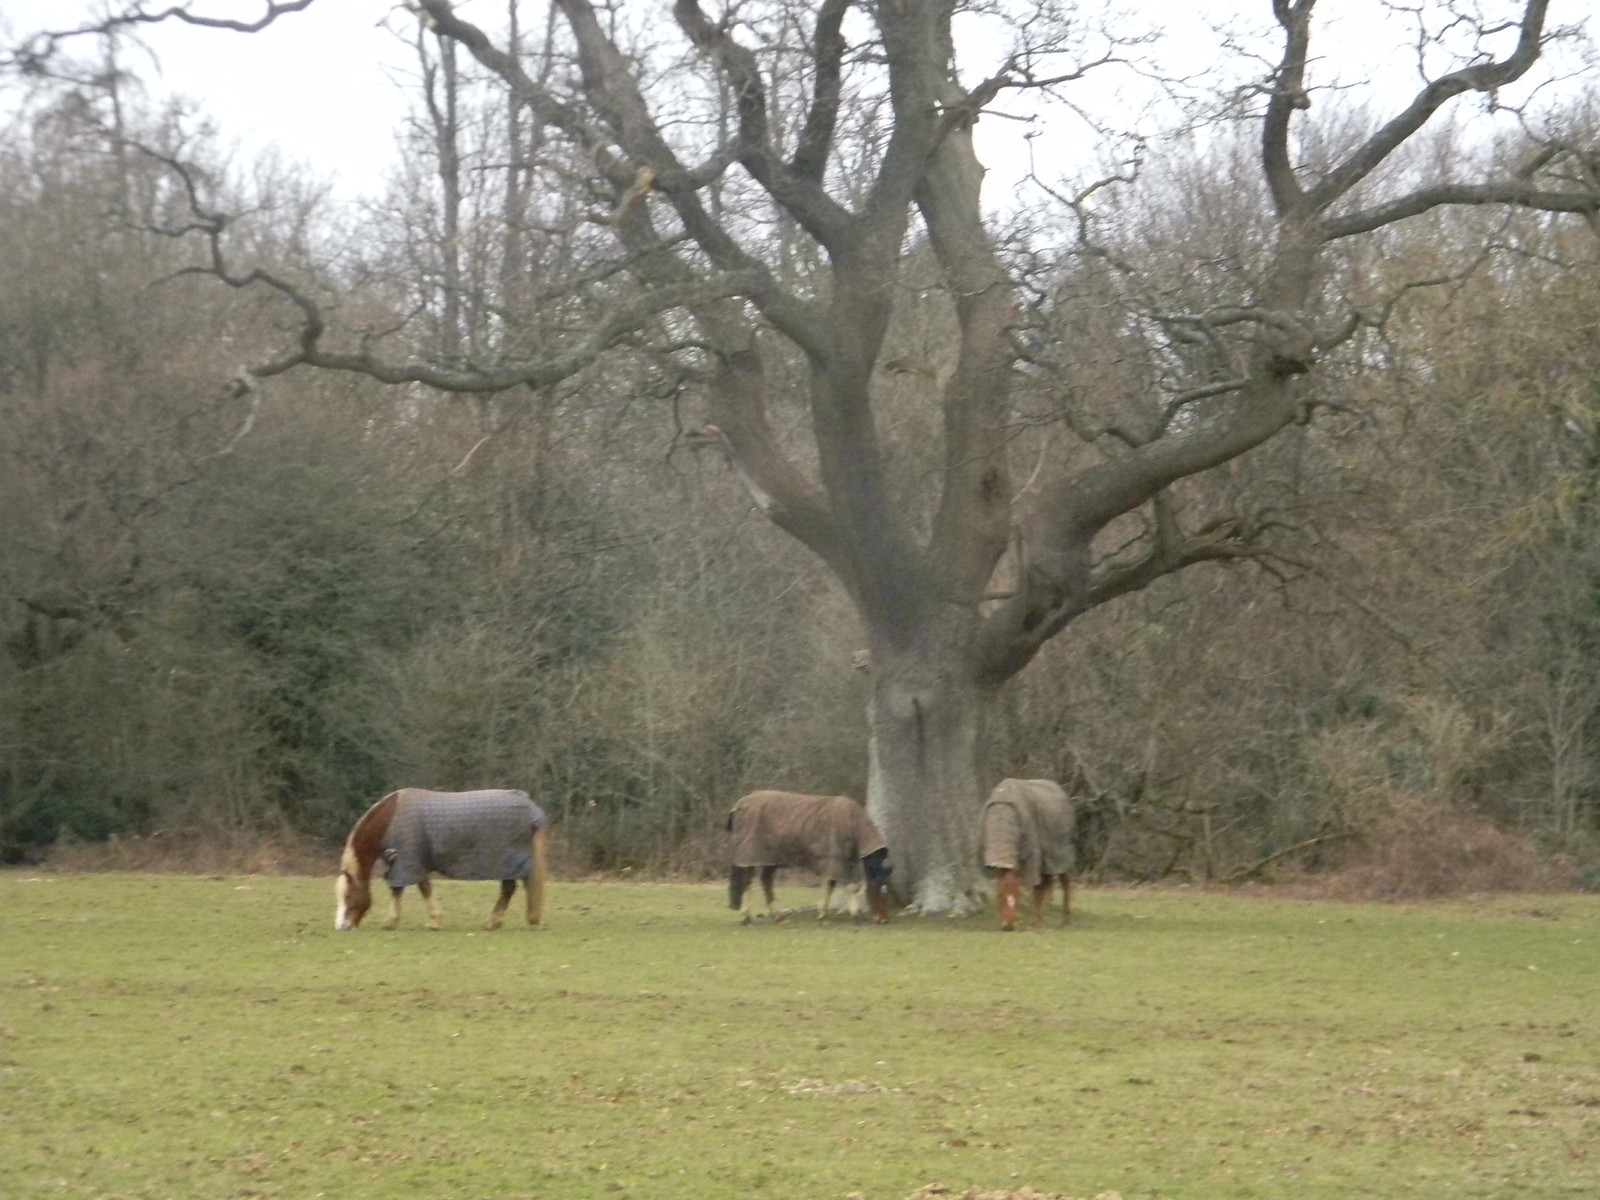 Horses round a tree 2 Whyteleaf to Hayes